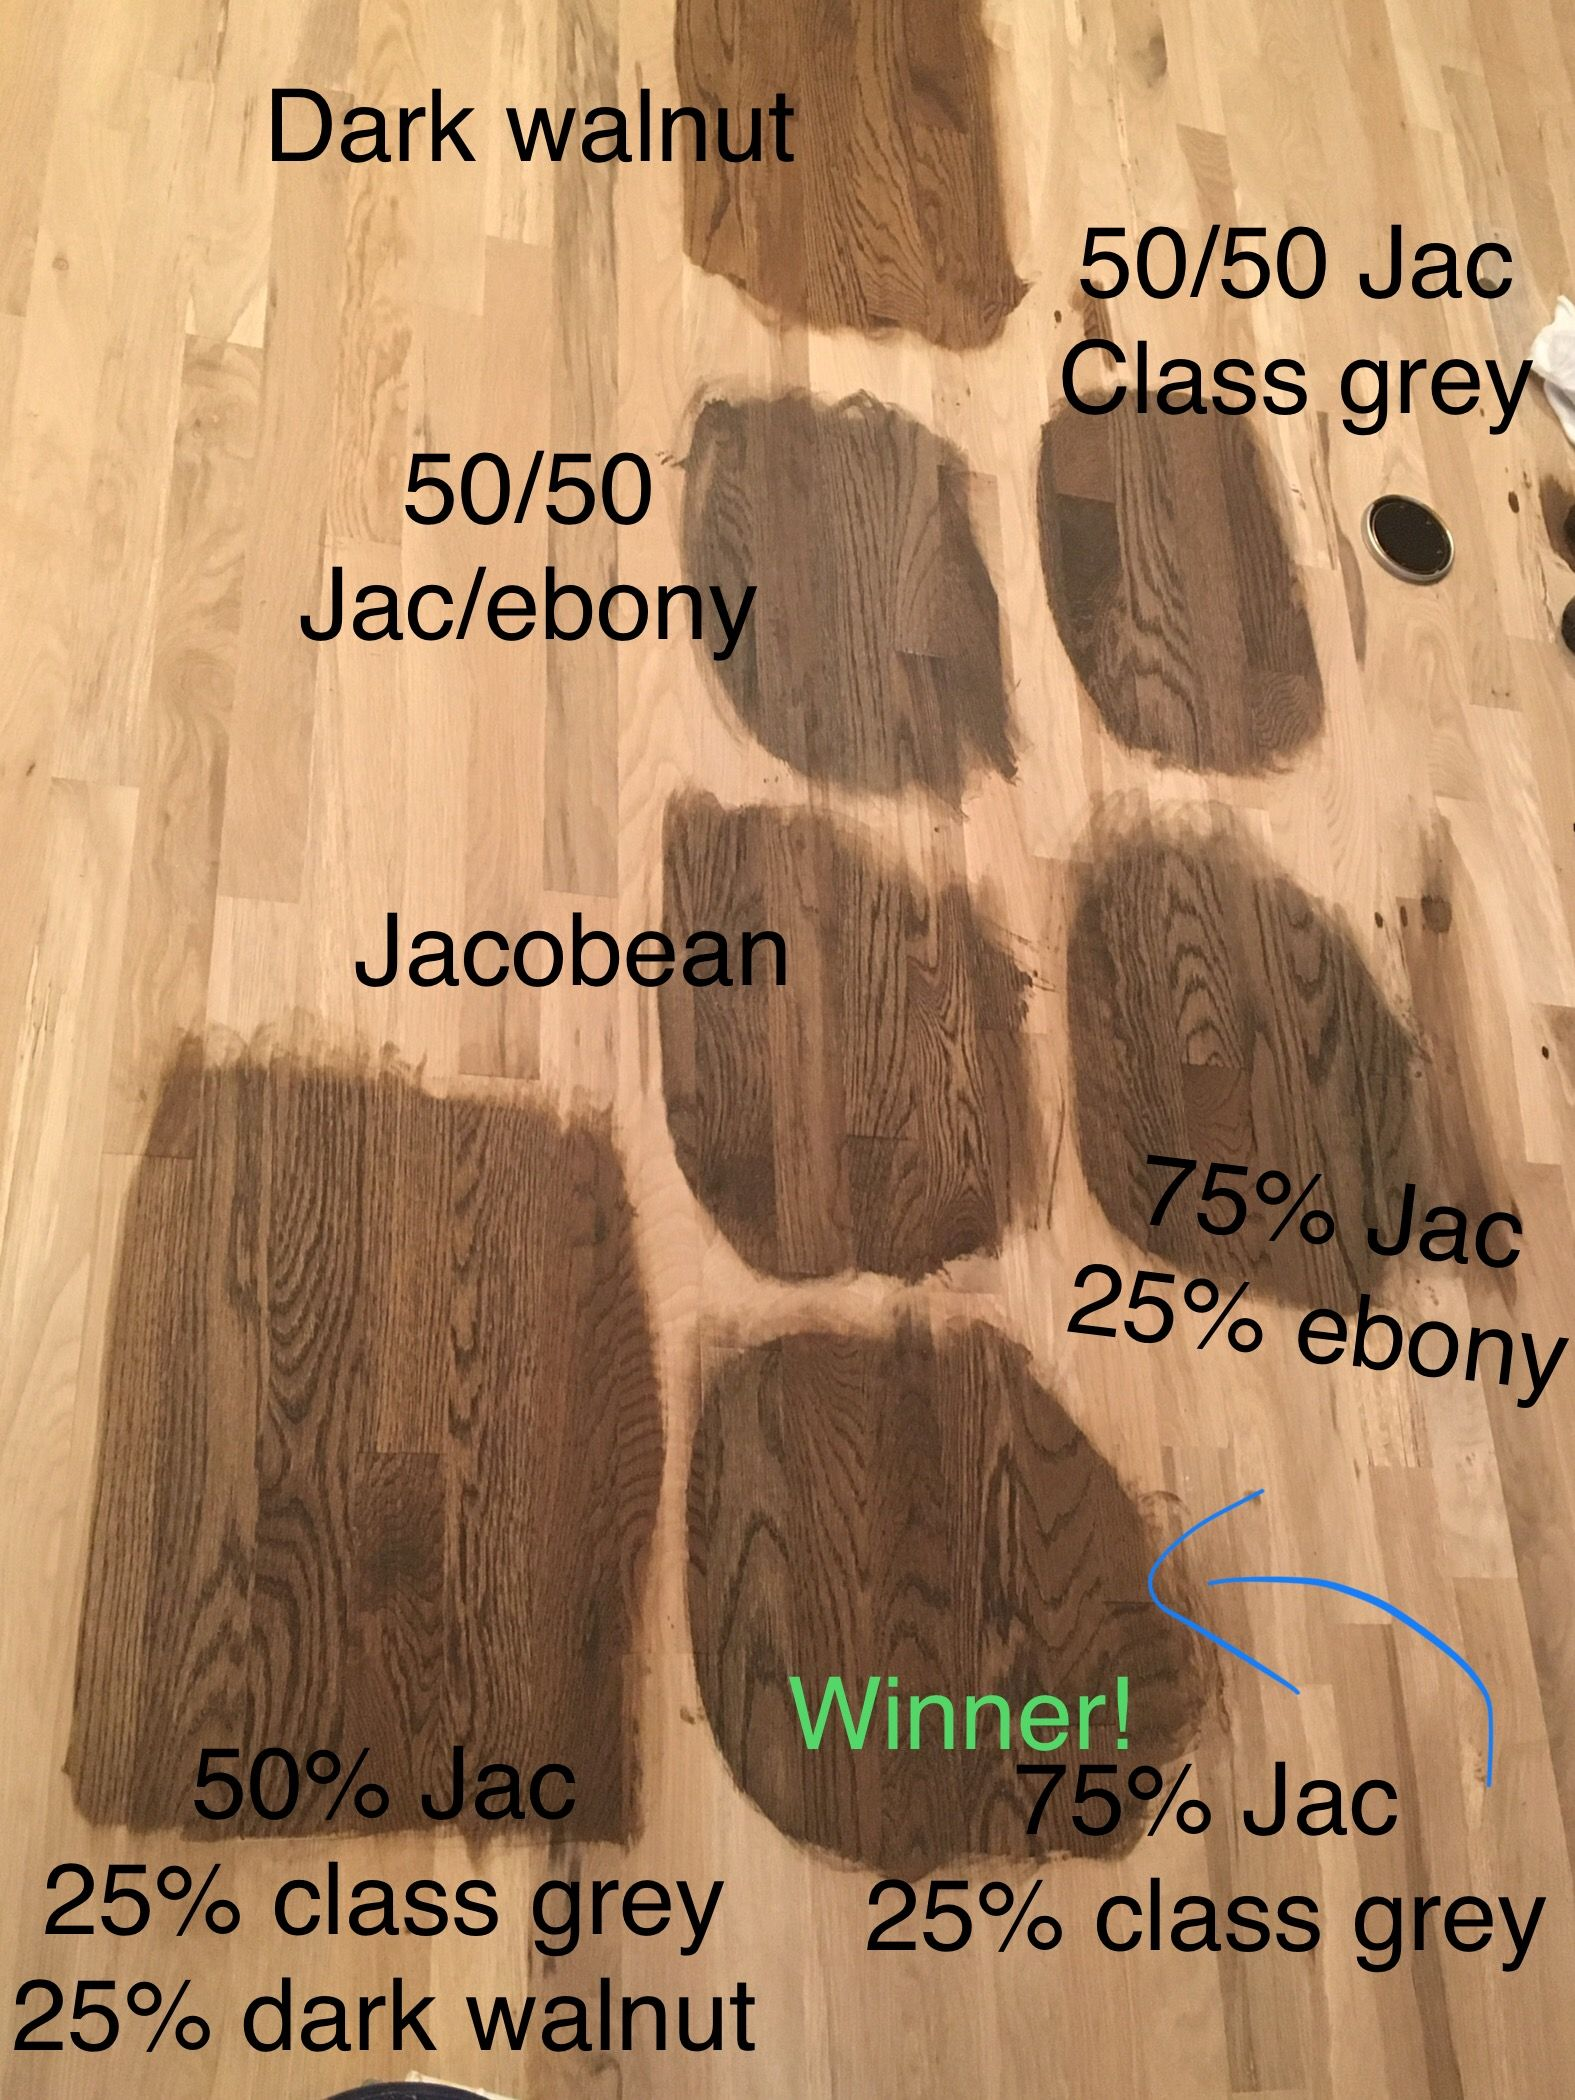 Chose our white oak hardwood stain color today the winner is